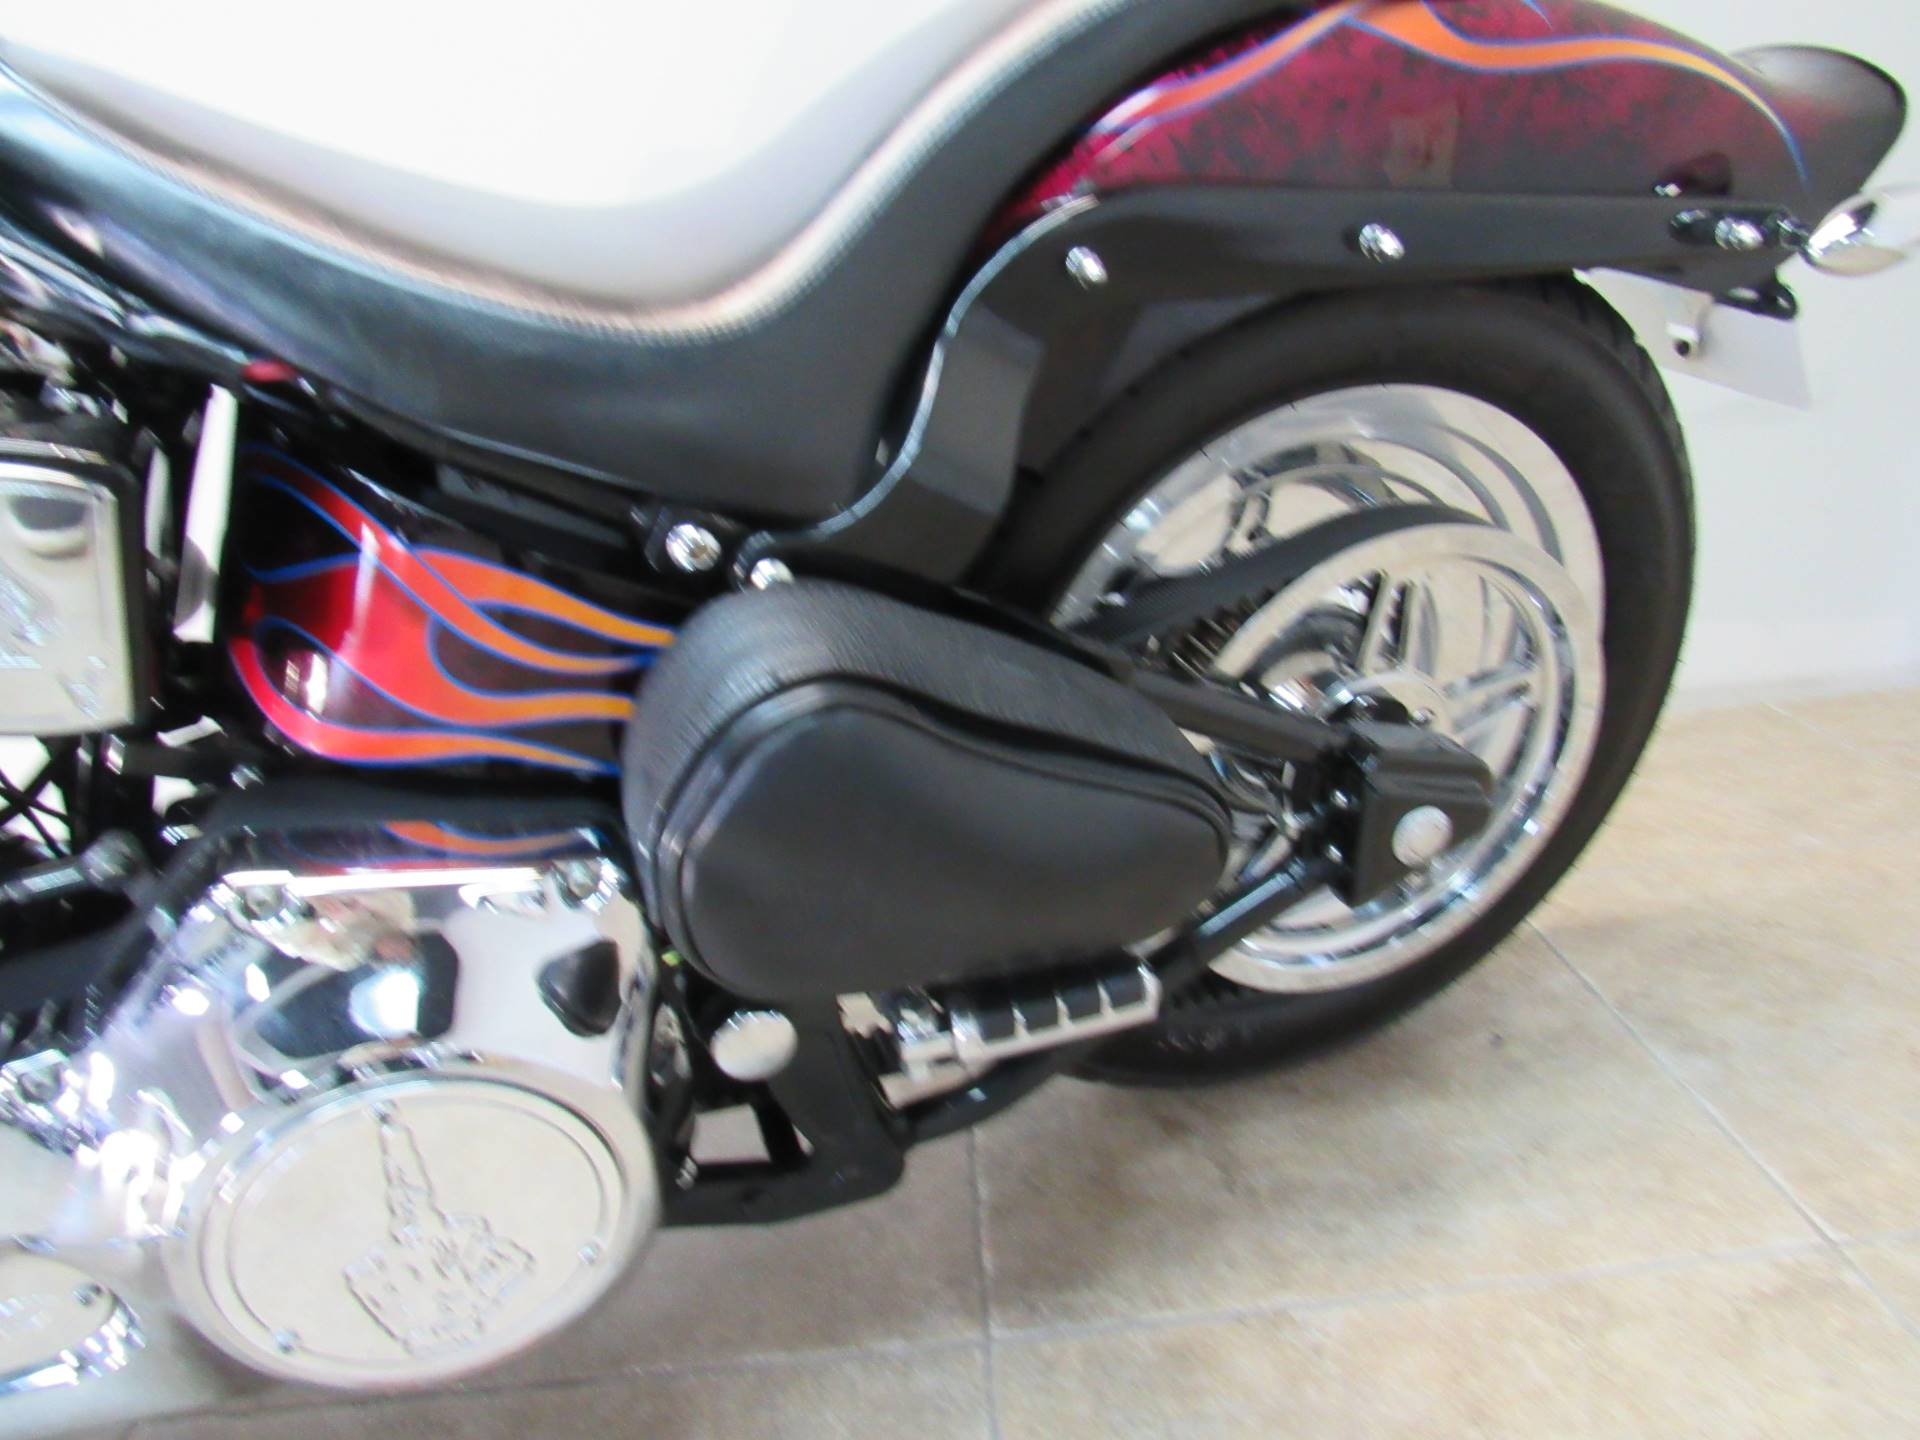 1996 Harley-Davidson softail custom in Temecula, California - Photo 43